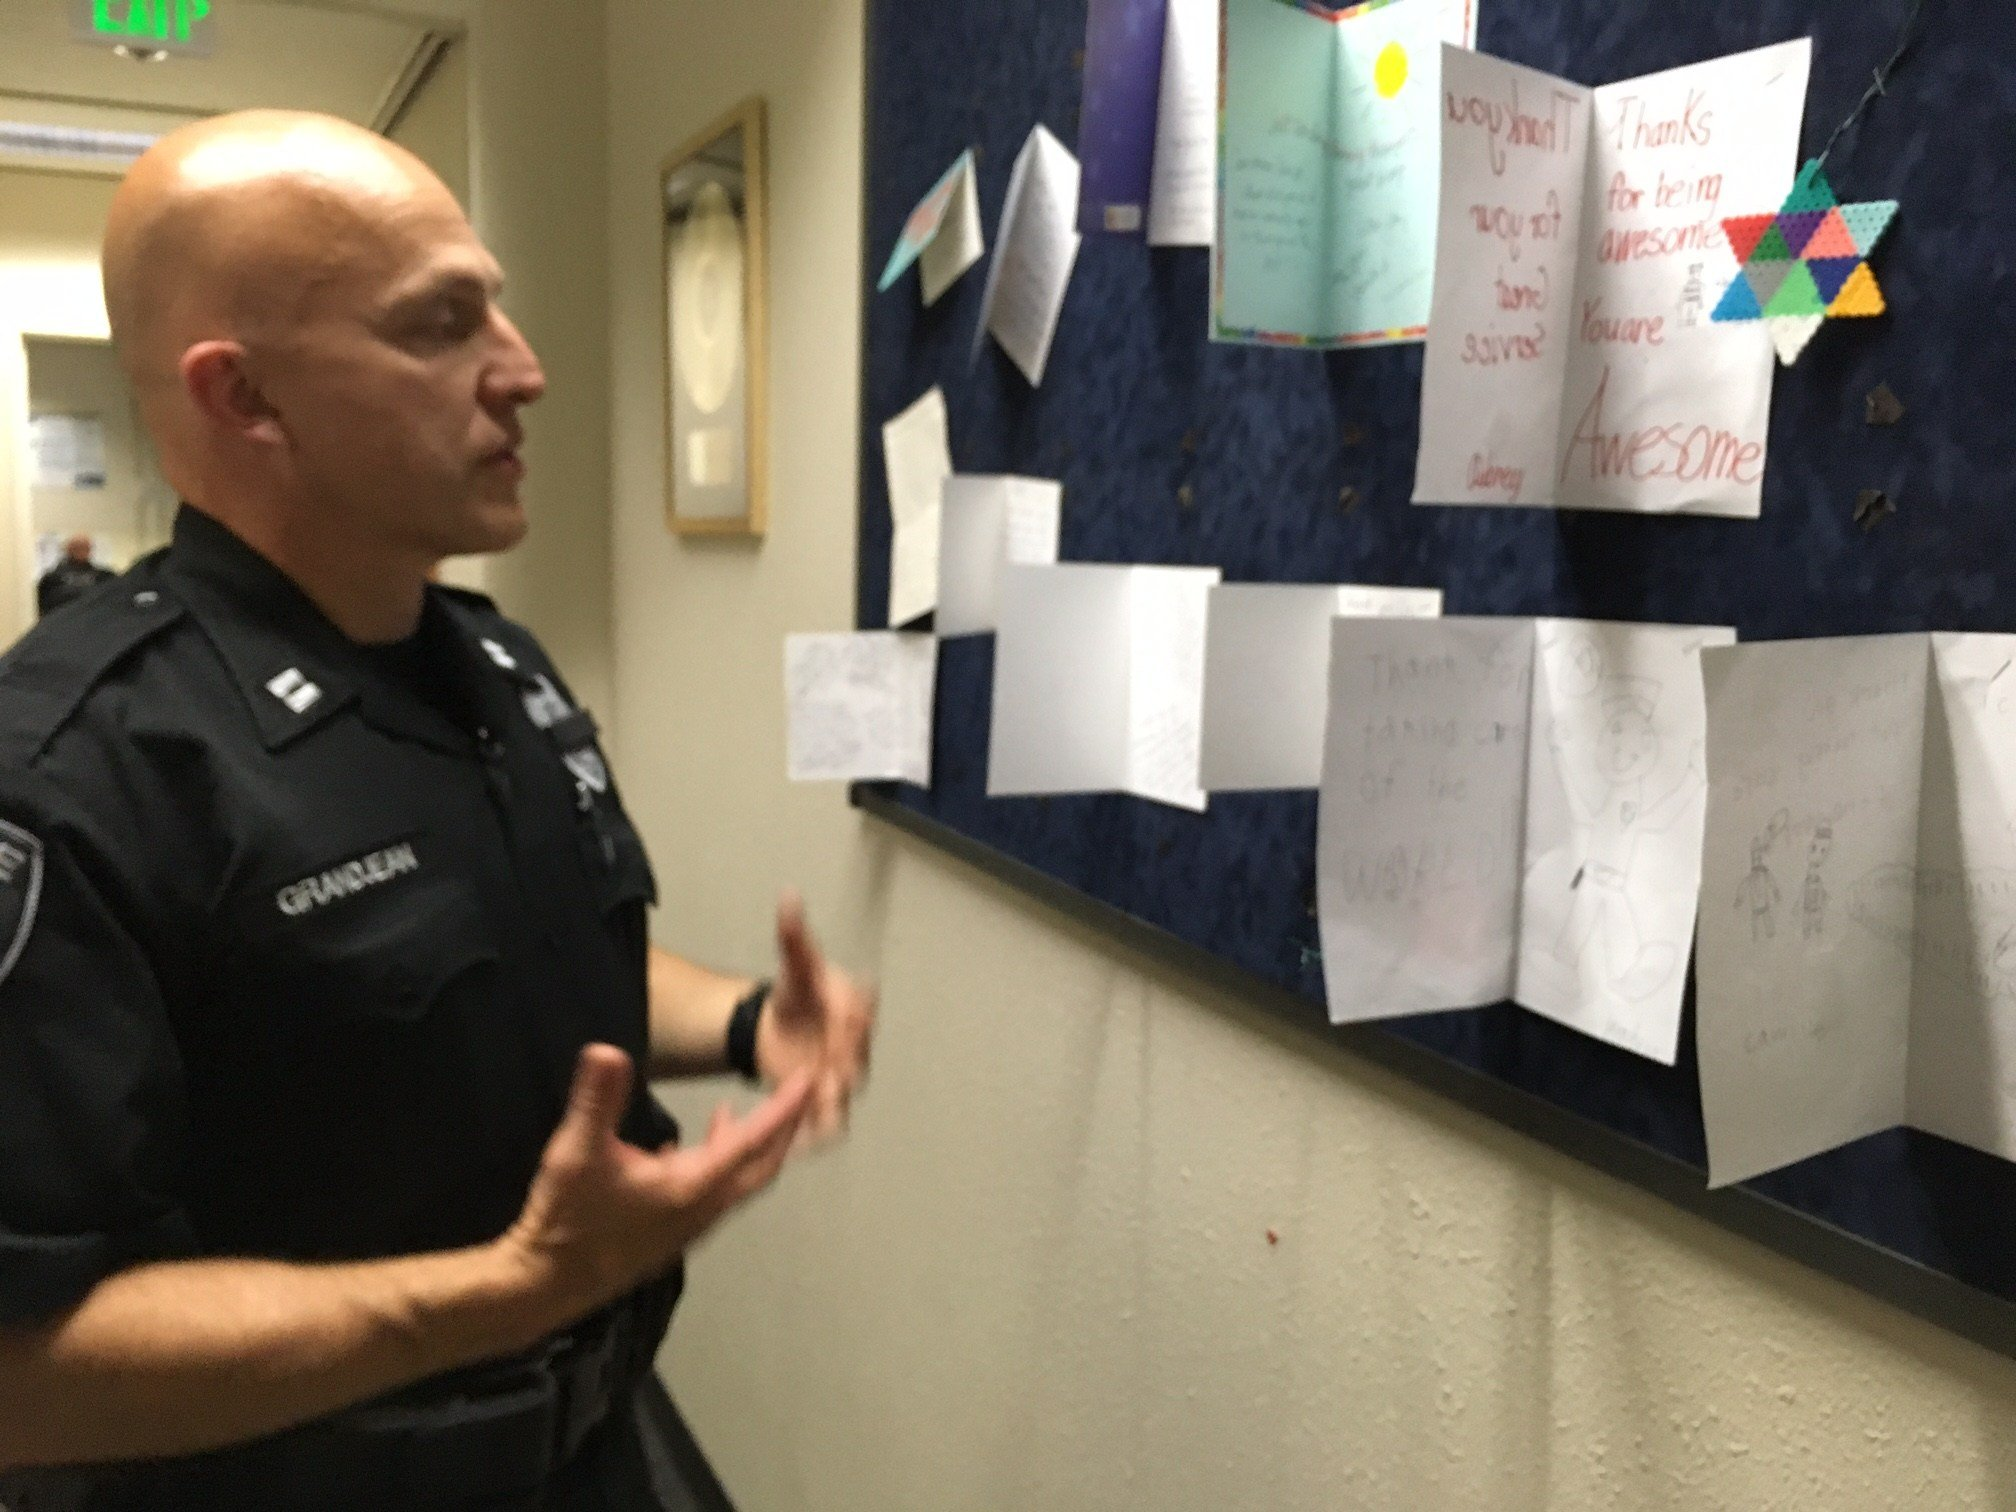 Capt. Claudio Grandjean next to a dozen notes of encouragement and support Tuesday. (KPTV)